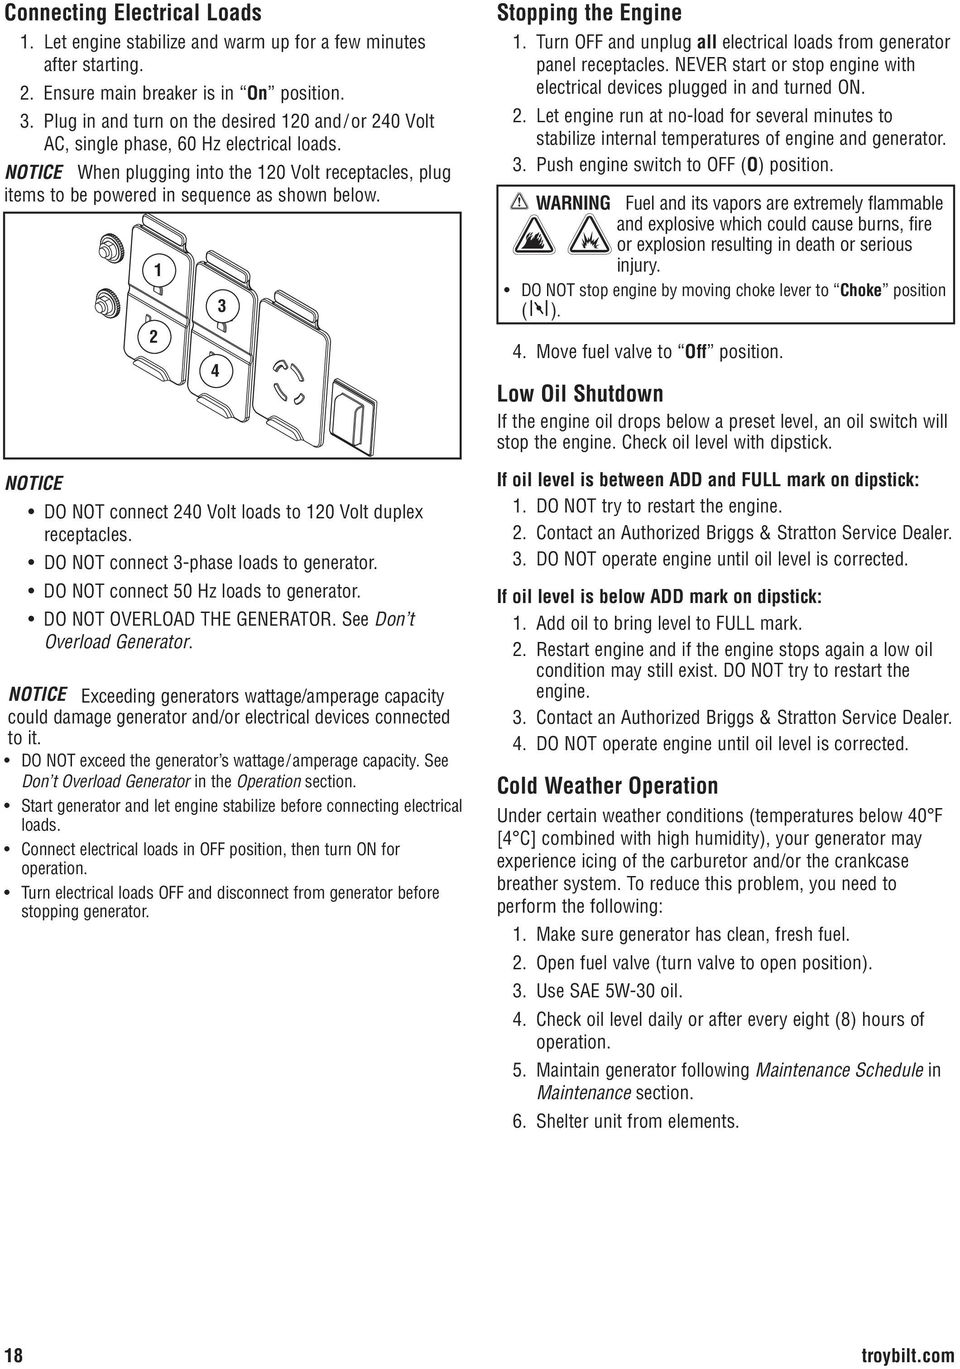 Portable Generator Operator S Manual Pdf Start Stop Switch Dont Know How To Wire A Motor 2 1 Notice Do Not Connect 240 Volt Loads 120 Duplex Receptacles